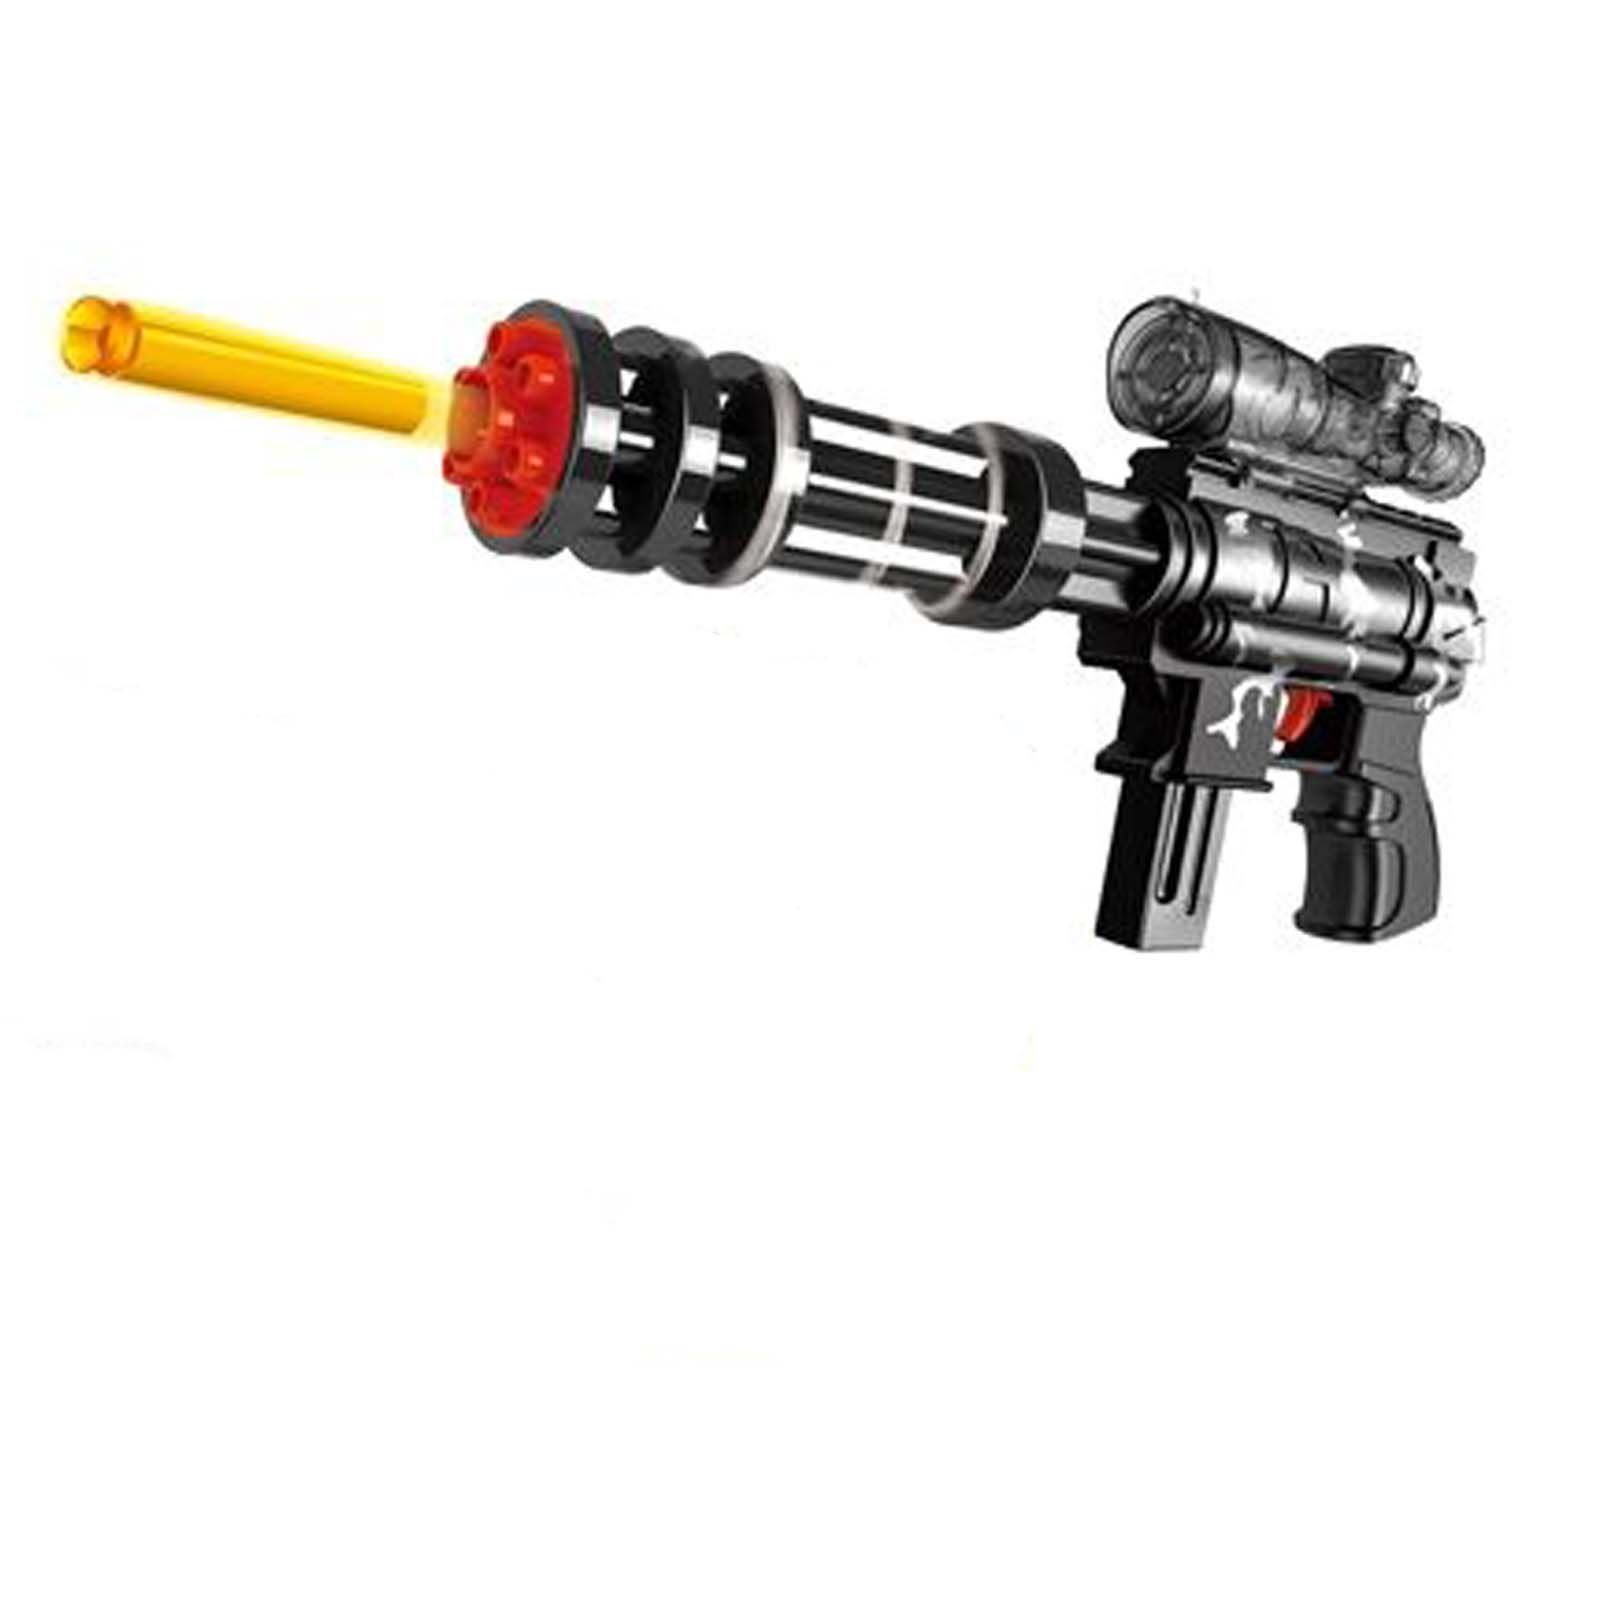 Water Gun Games For Kids